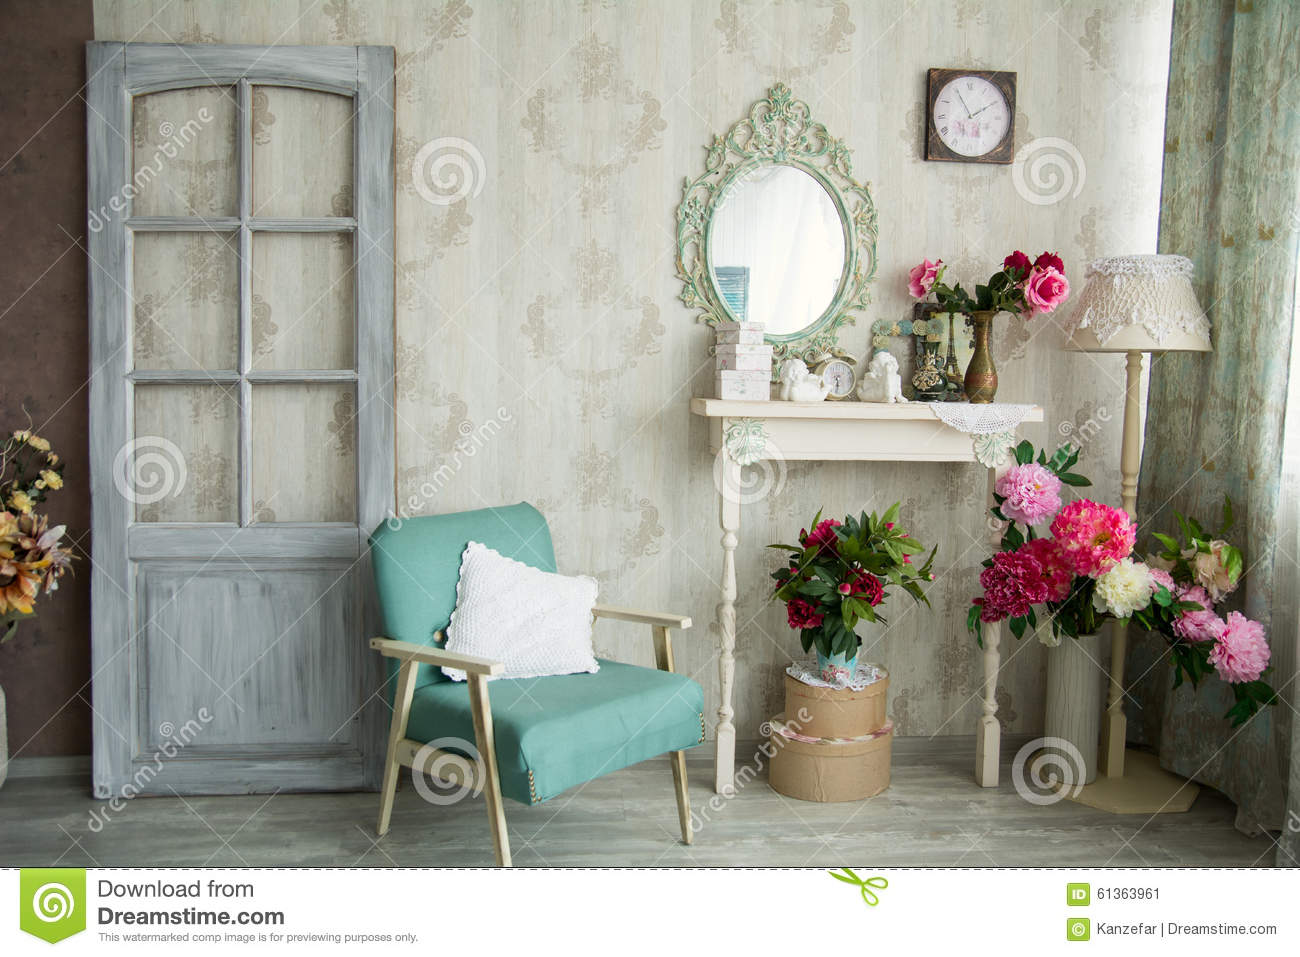 vintage country house interior with mirror and a table with a va stock image image 61363961. Black Bedroom Furniture Sets. Home Design Ideas